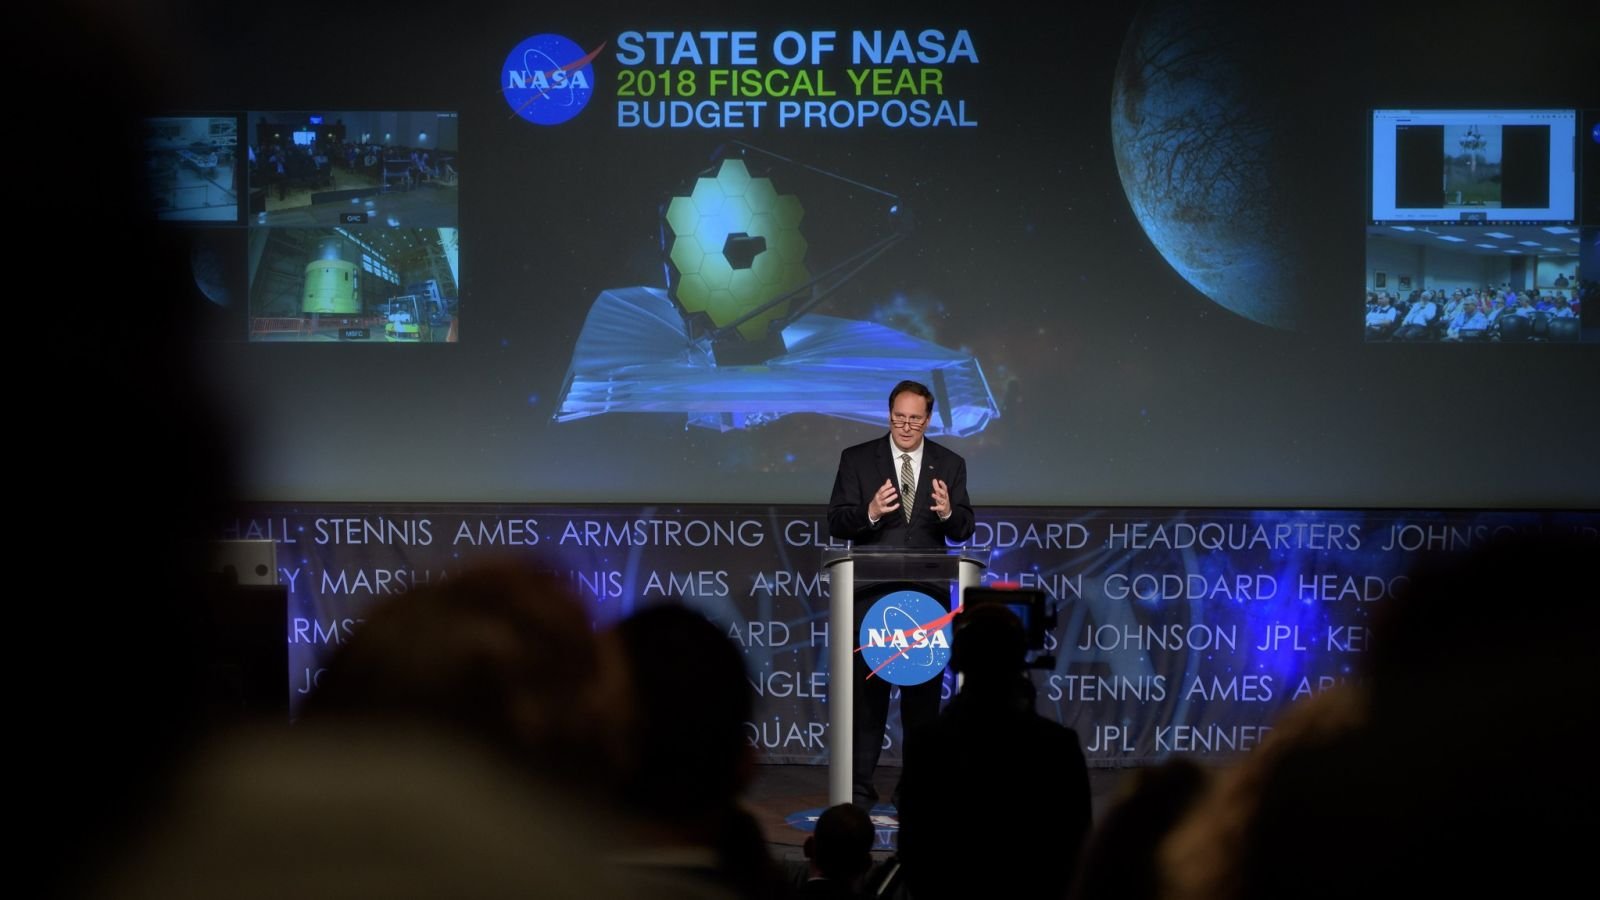 Acting NASA Administrator Robert Lightfoot discusses the FY 2018 budget during a State of NASA address. Photo Credit: Bill Ingalls / NASA